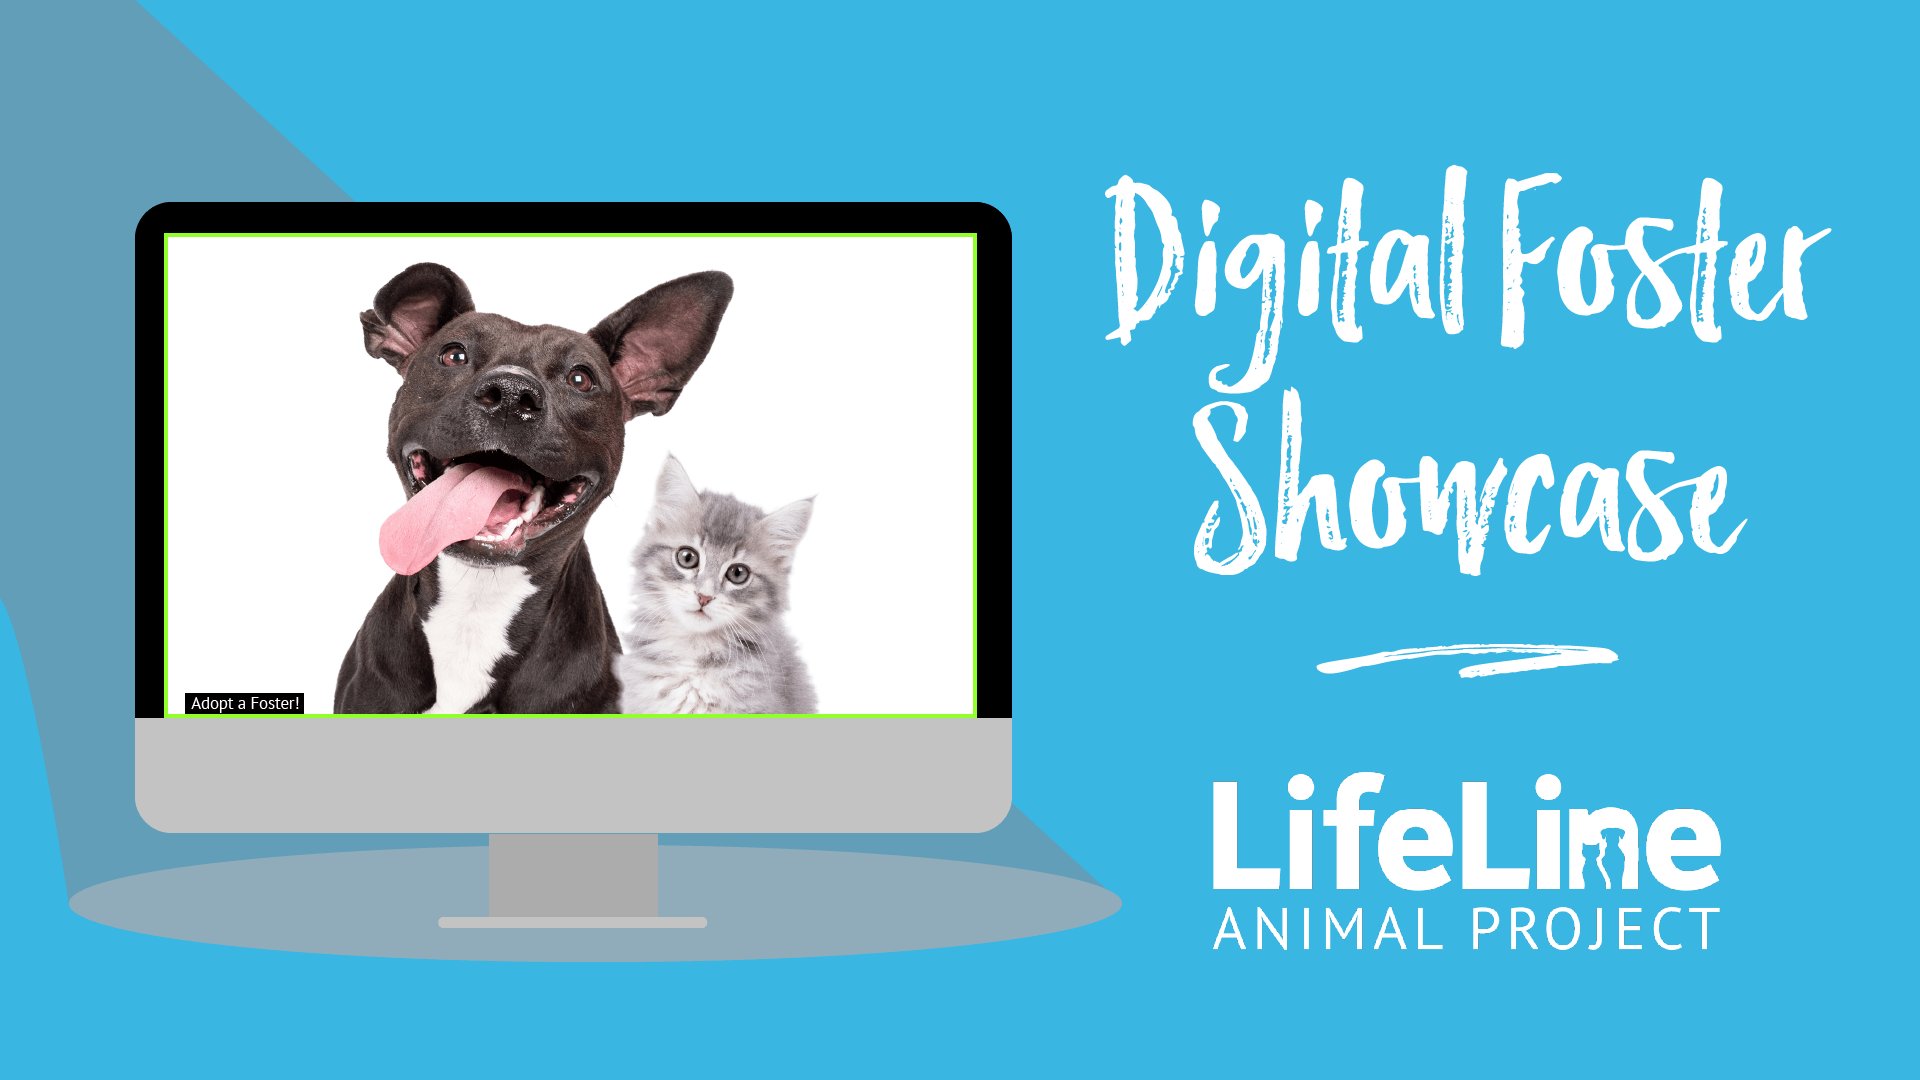 Dog and Cat in a computer screen next to words digital foster showcase